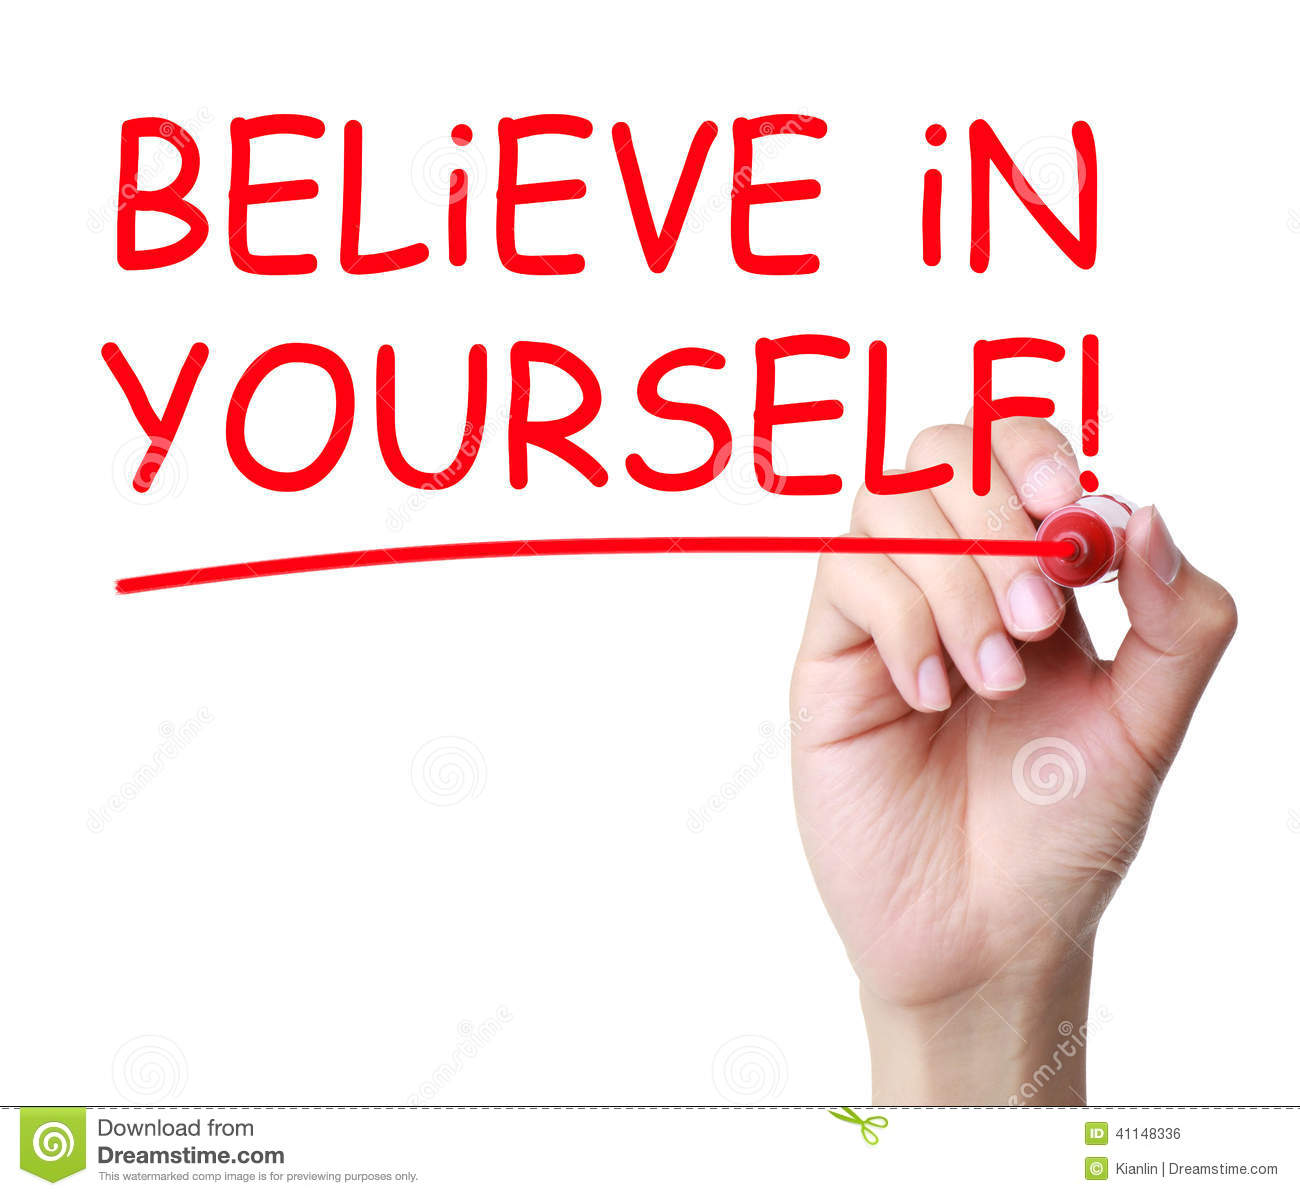 I believe in myself essay